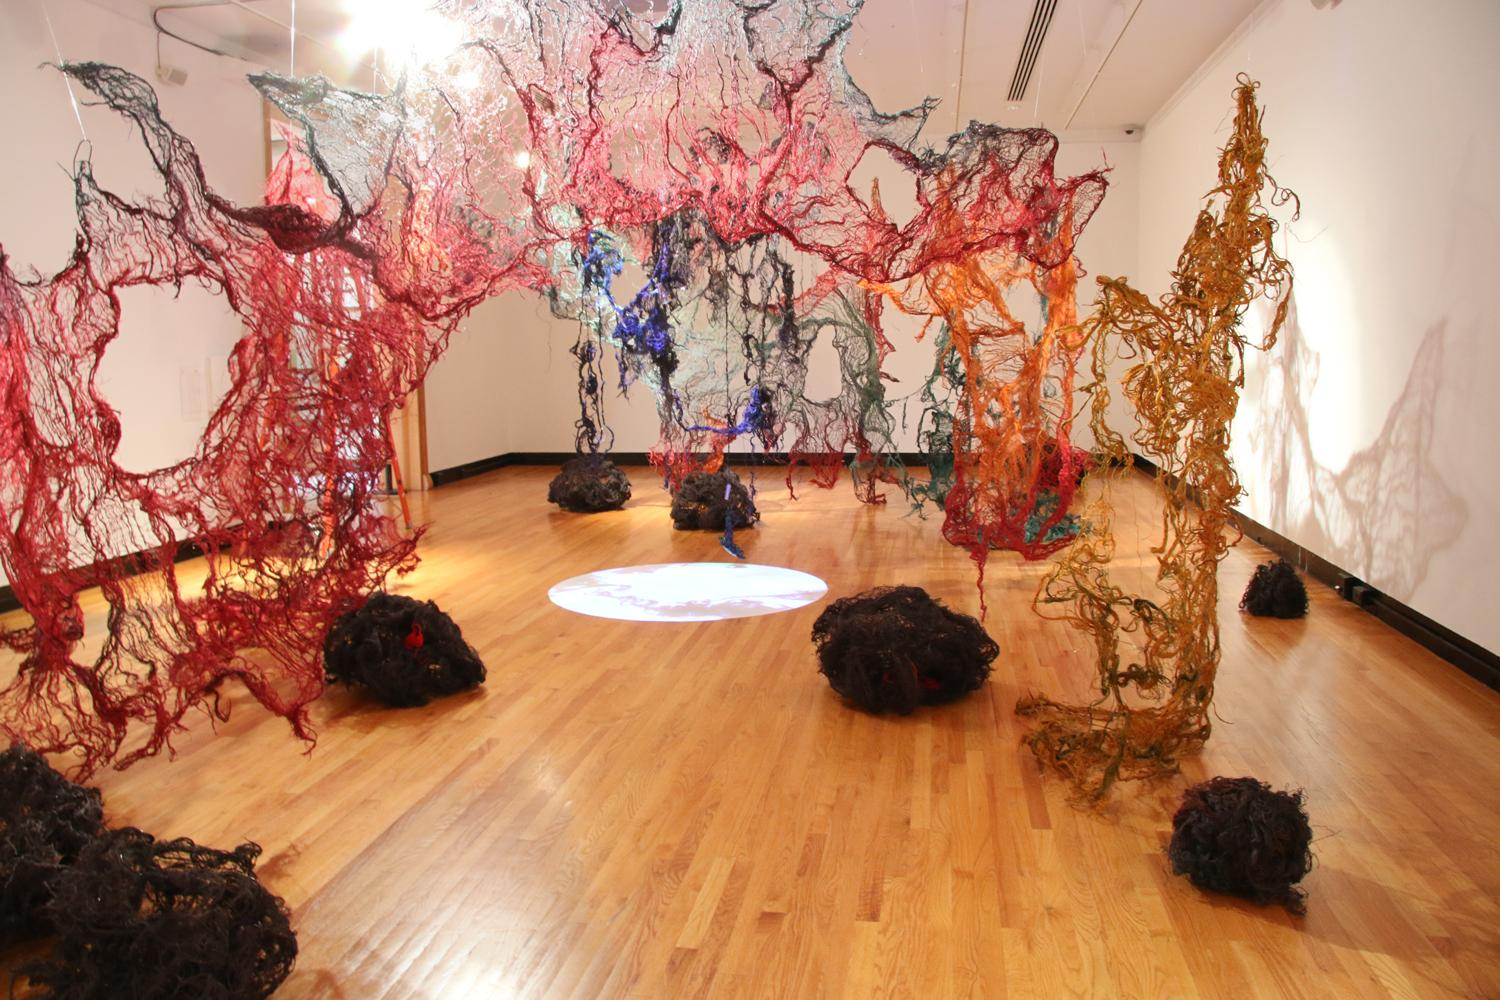 Nkata: An Installation by Nnenna Okore at Krannert Art Museum, Aug. 28 through Dec. 23, 2015 | Photo by Julia Nucci Kelly